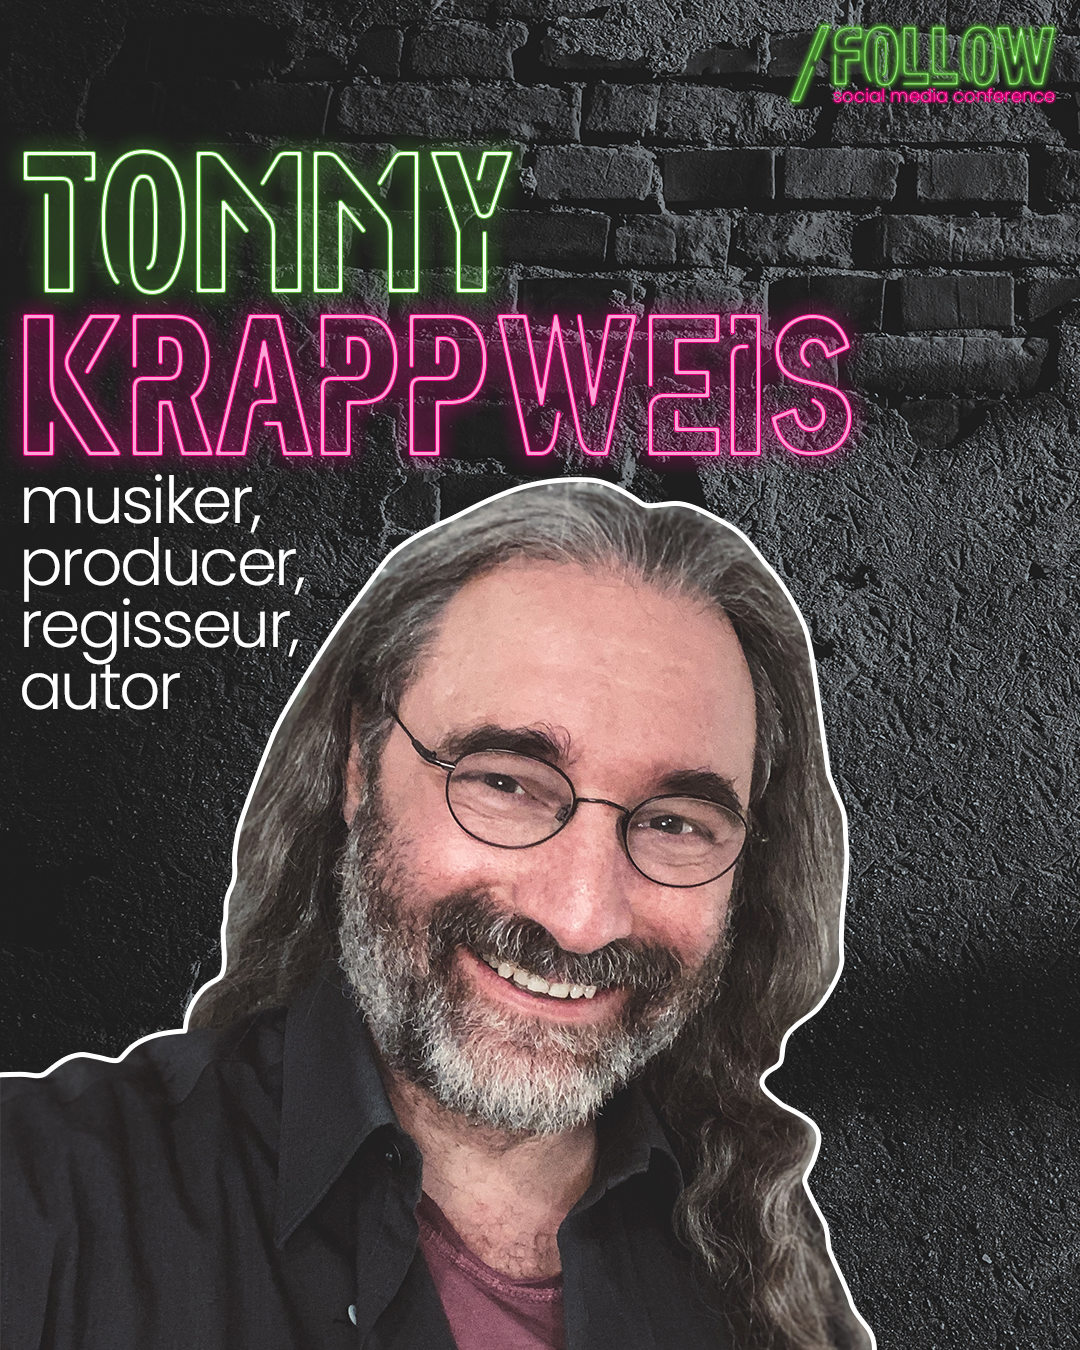 TommyKrappweis_Posting